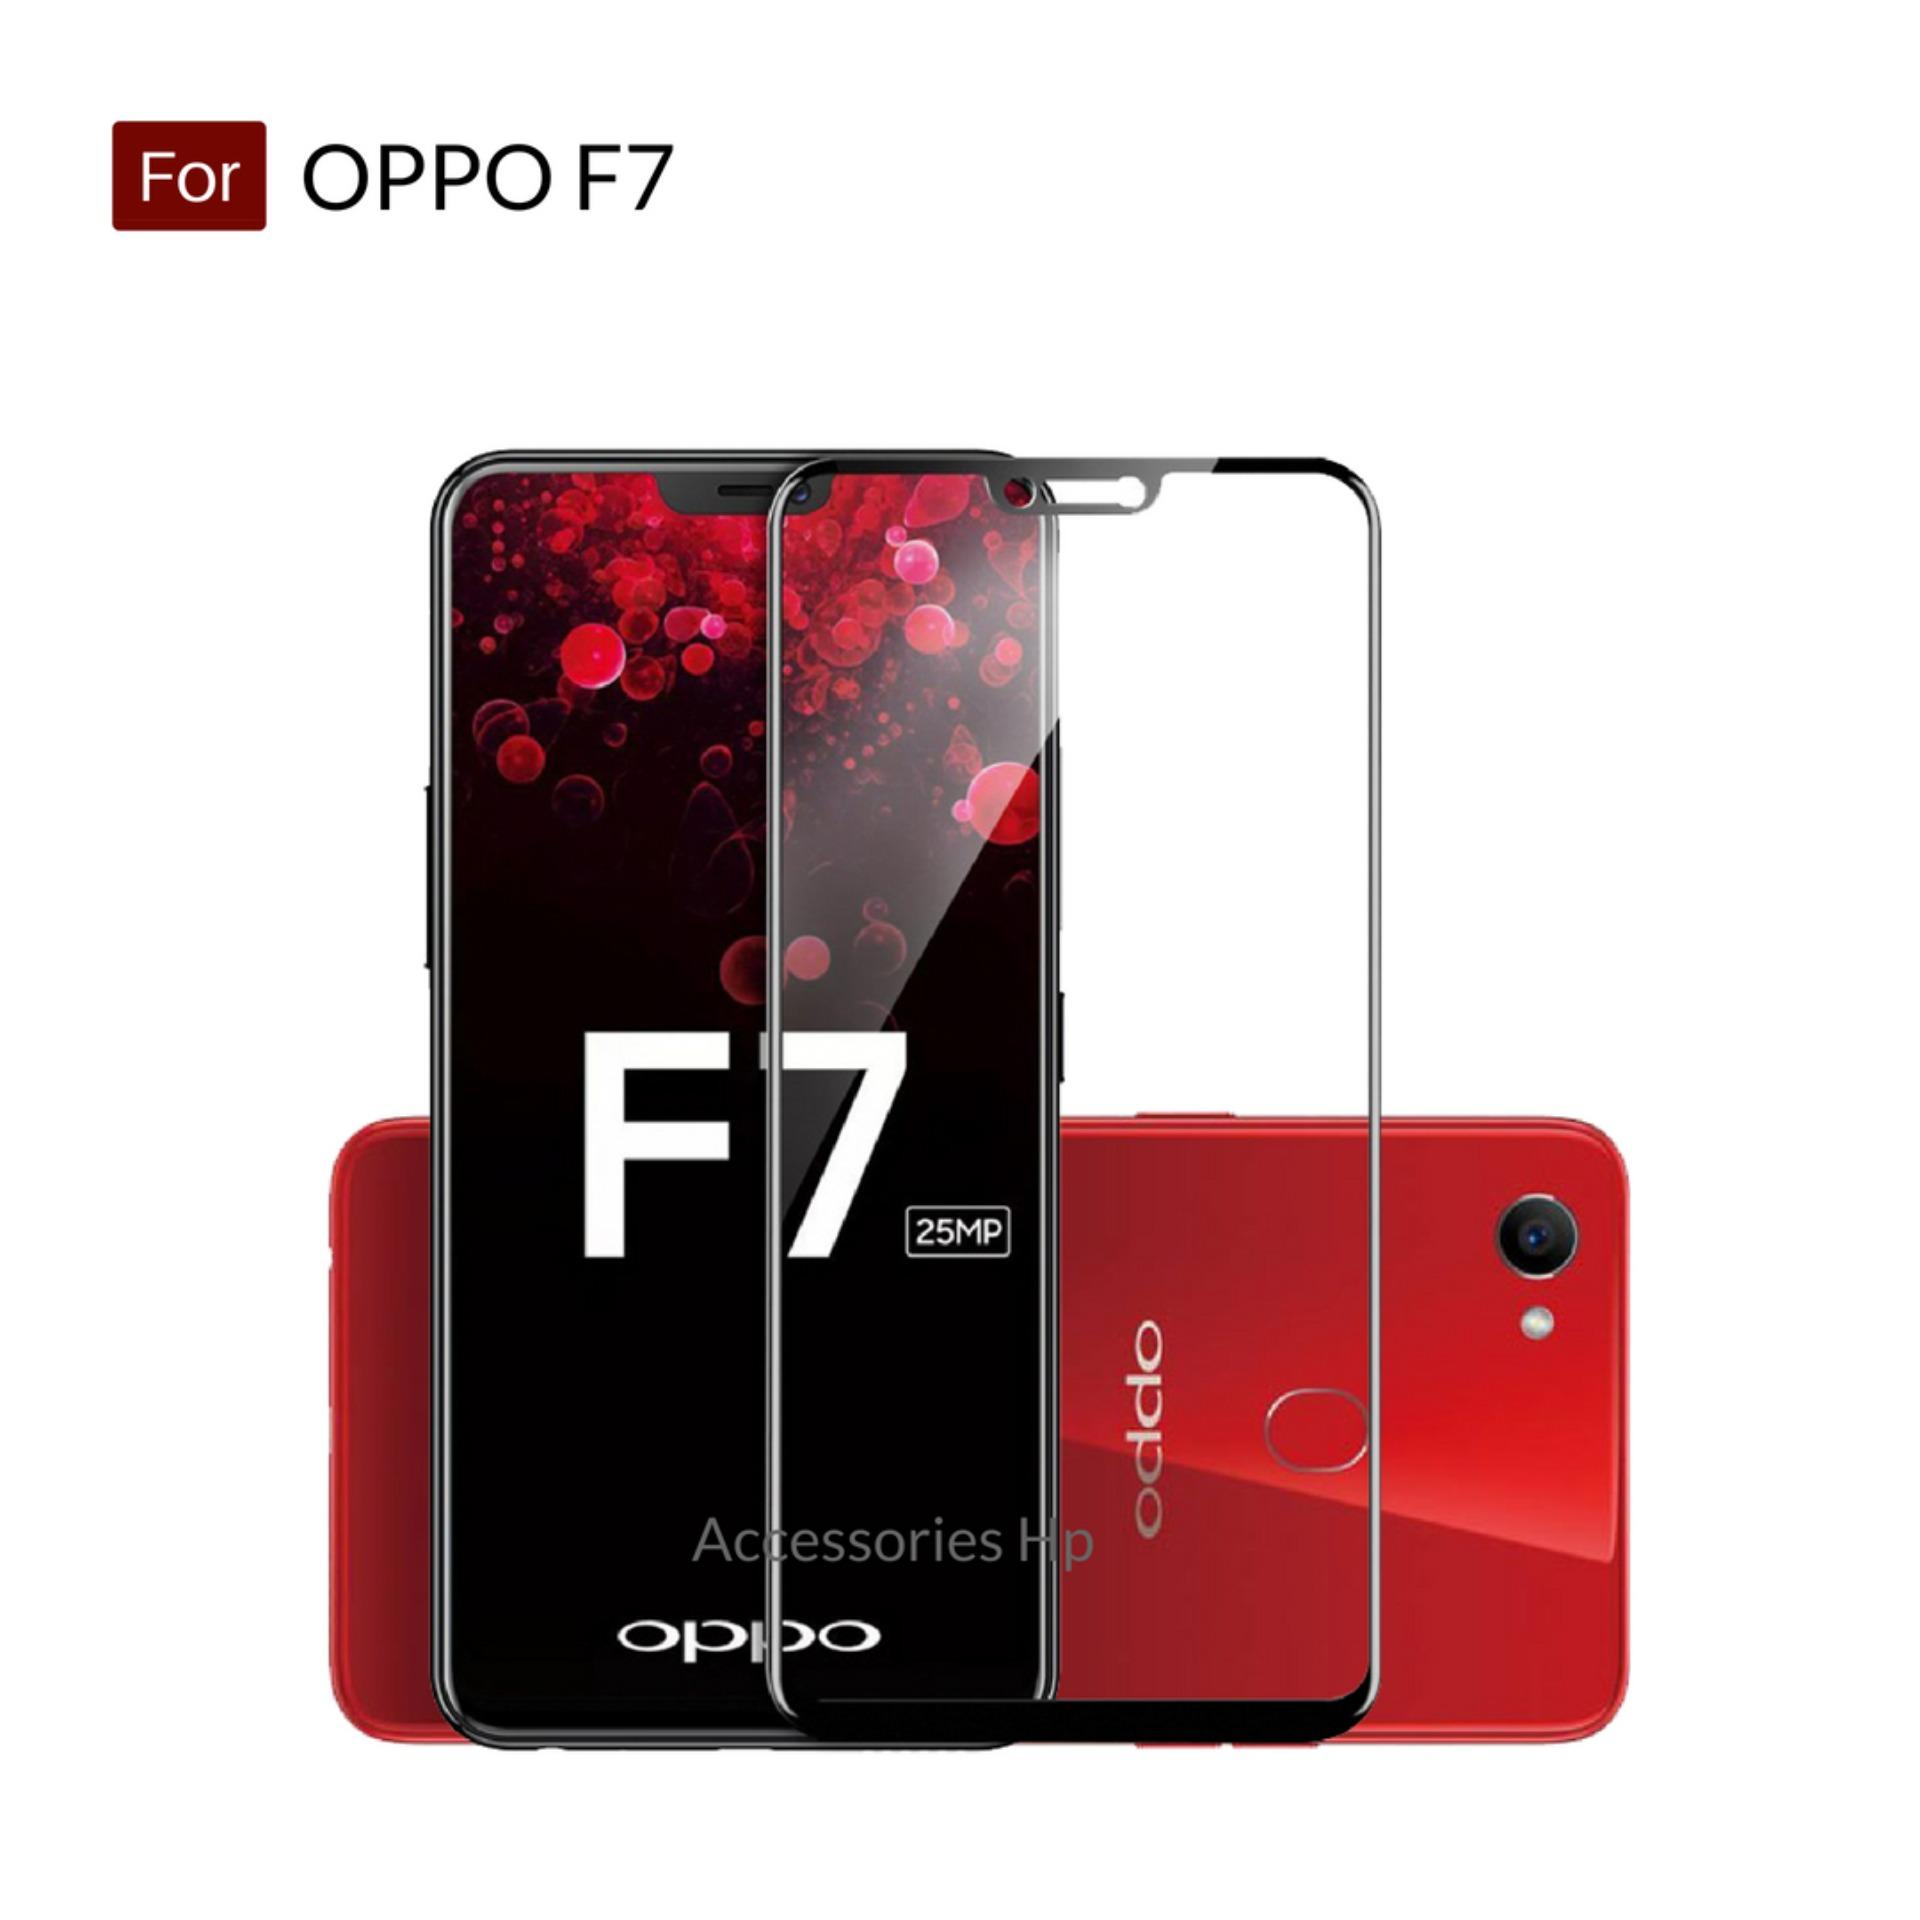 Accessories Hp Full Cover Tempered Glass Warna Screen Protector for Oppo F7 - Black